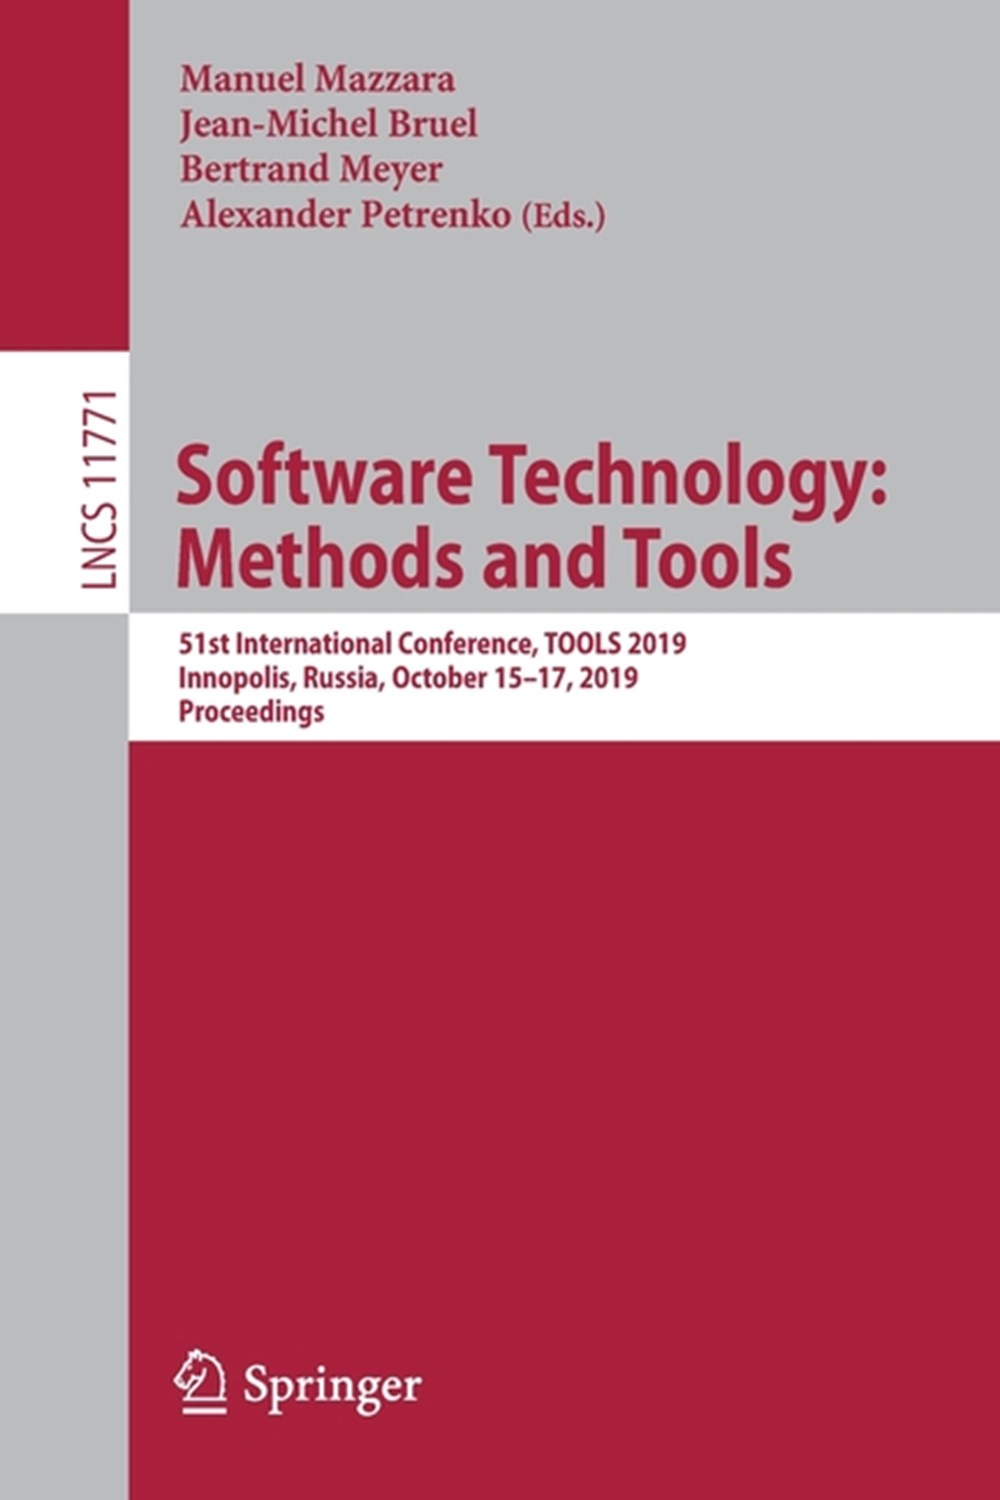 Software Technology Methods and Tools: 51st International Conference, Tools 2019, Innopolis, Russia,